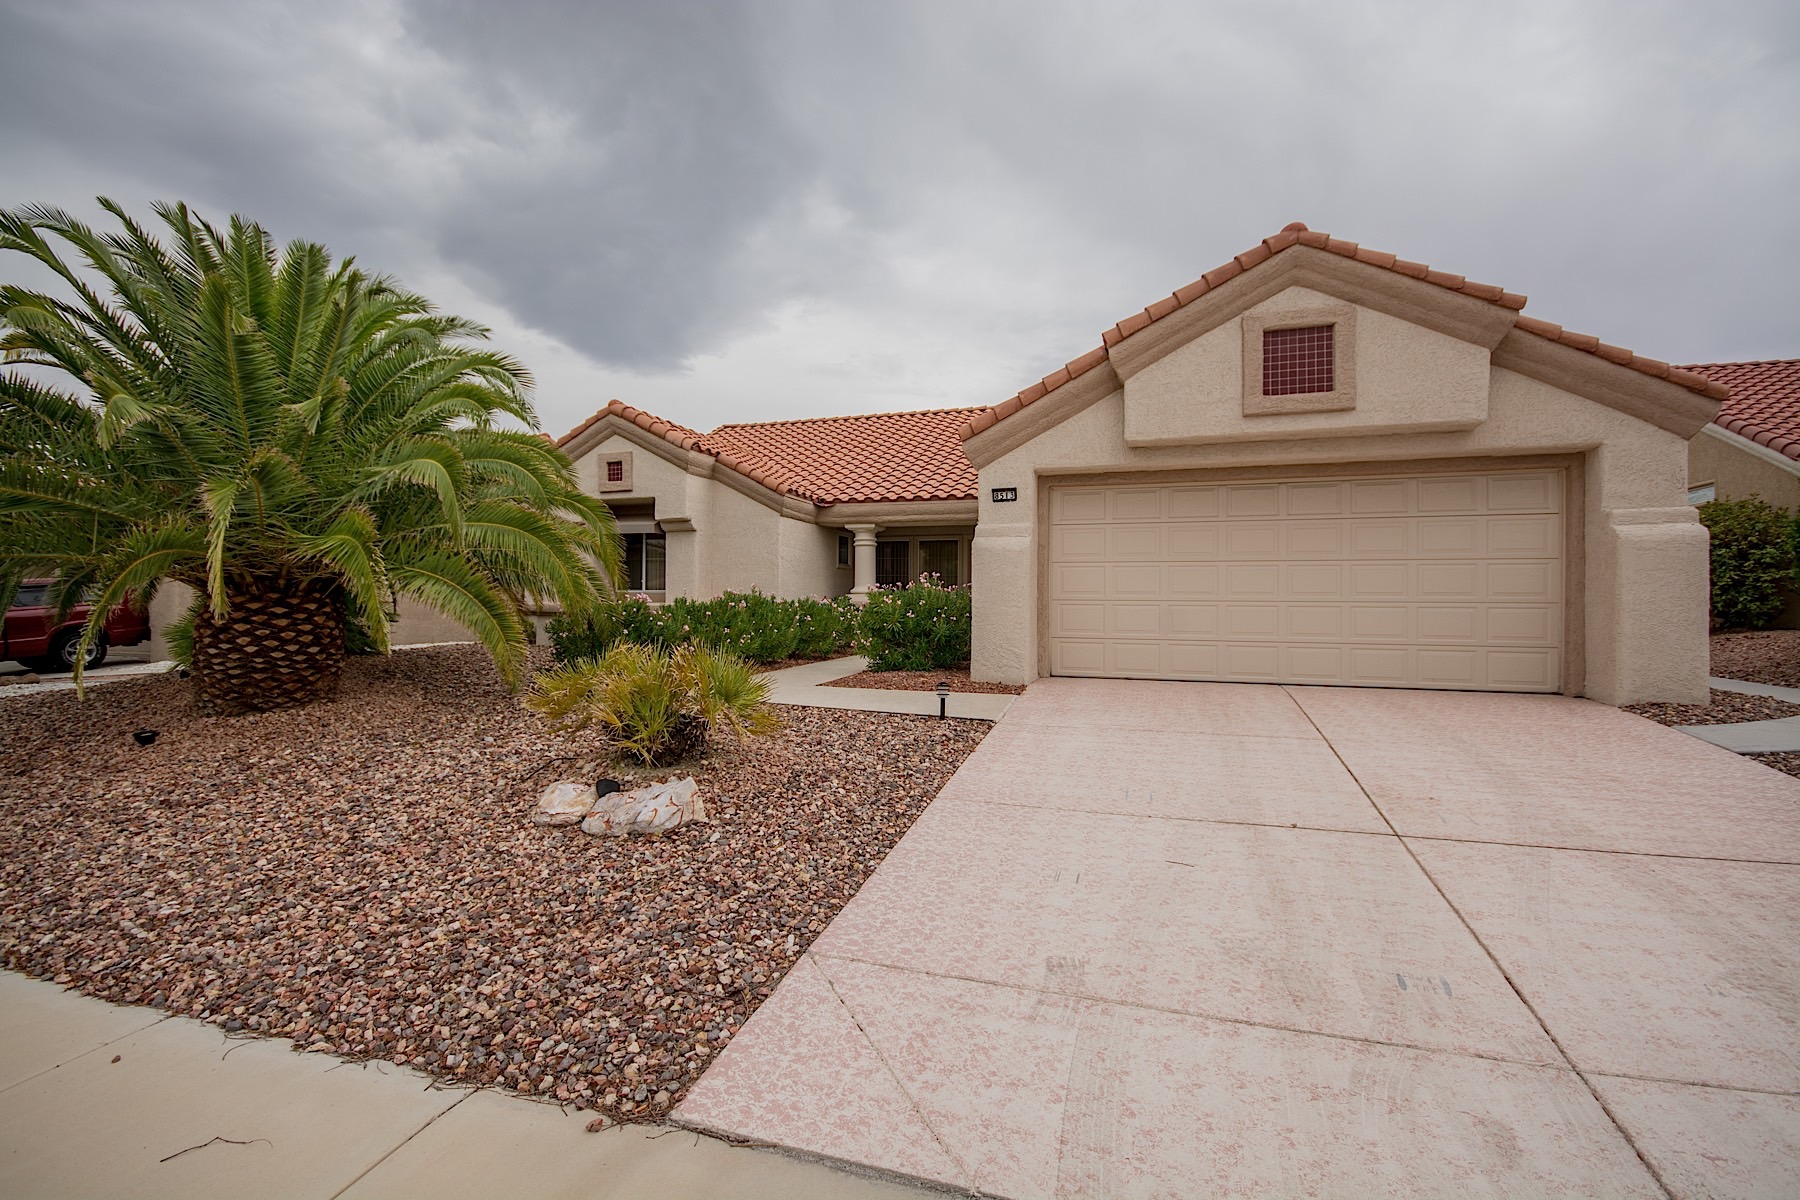 Single Family Home for Sale at 8513 Gull Dr. 8513 Gull Drive Las Vegas, Nevada 89134 United States